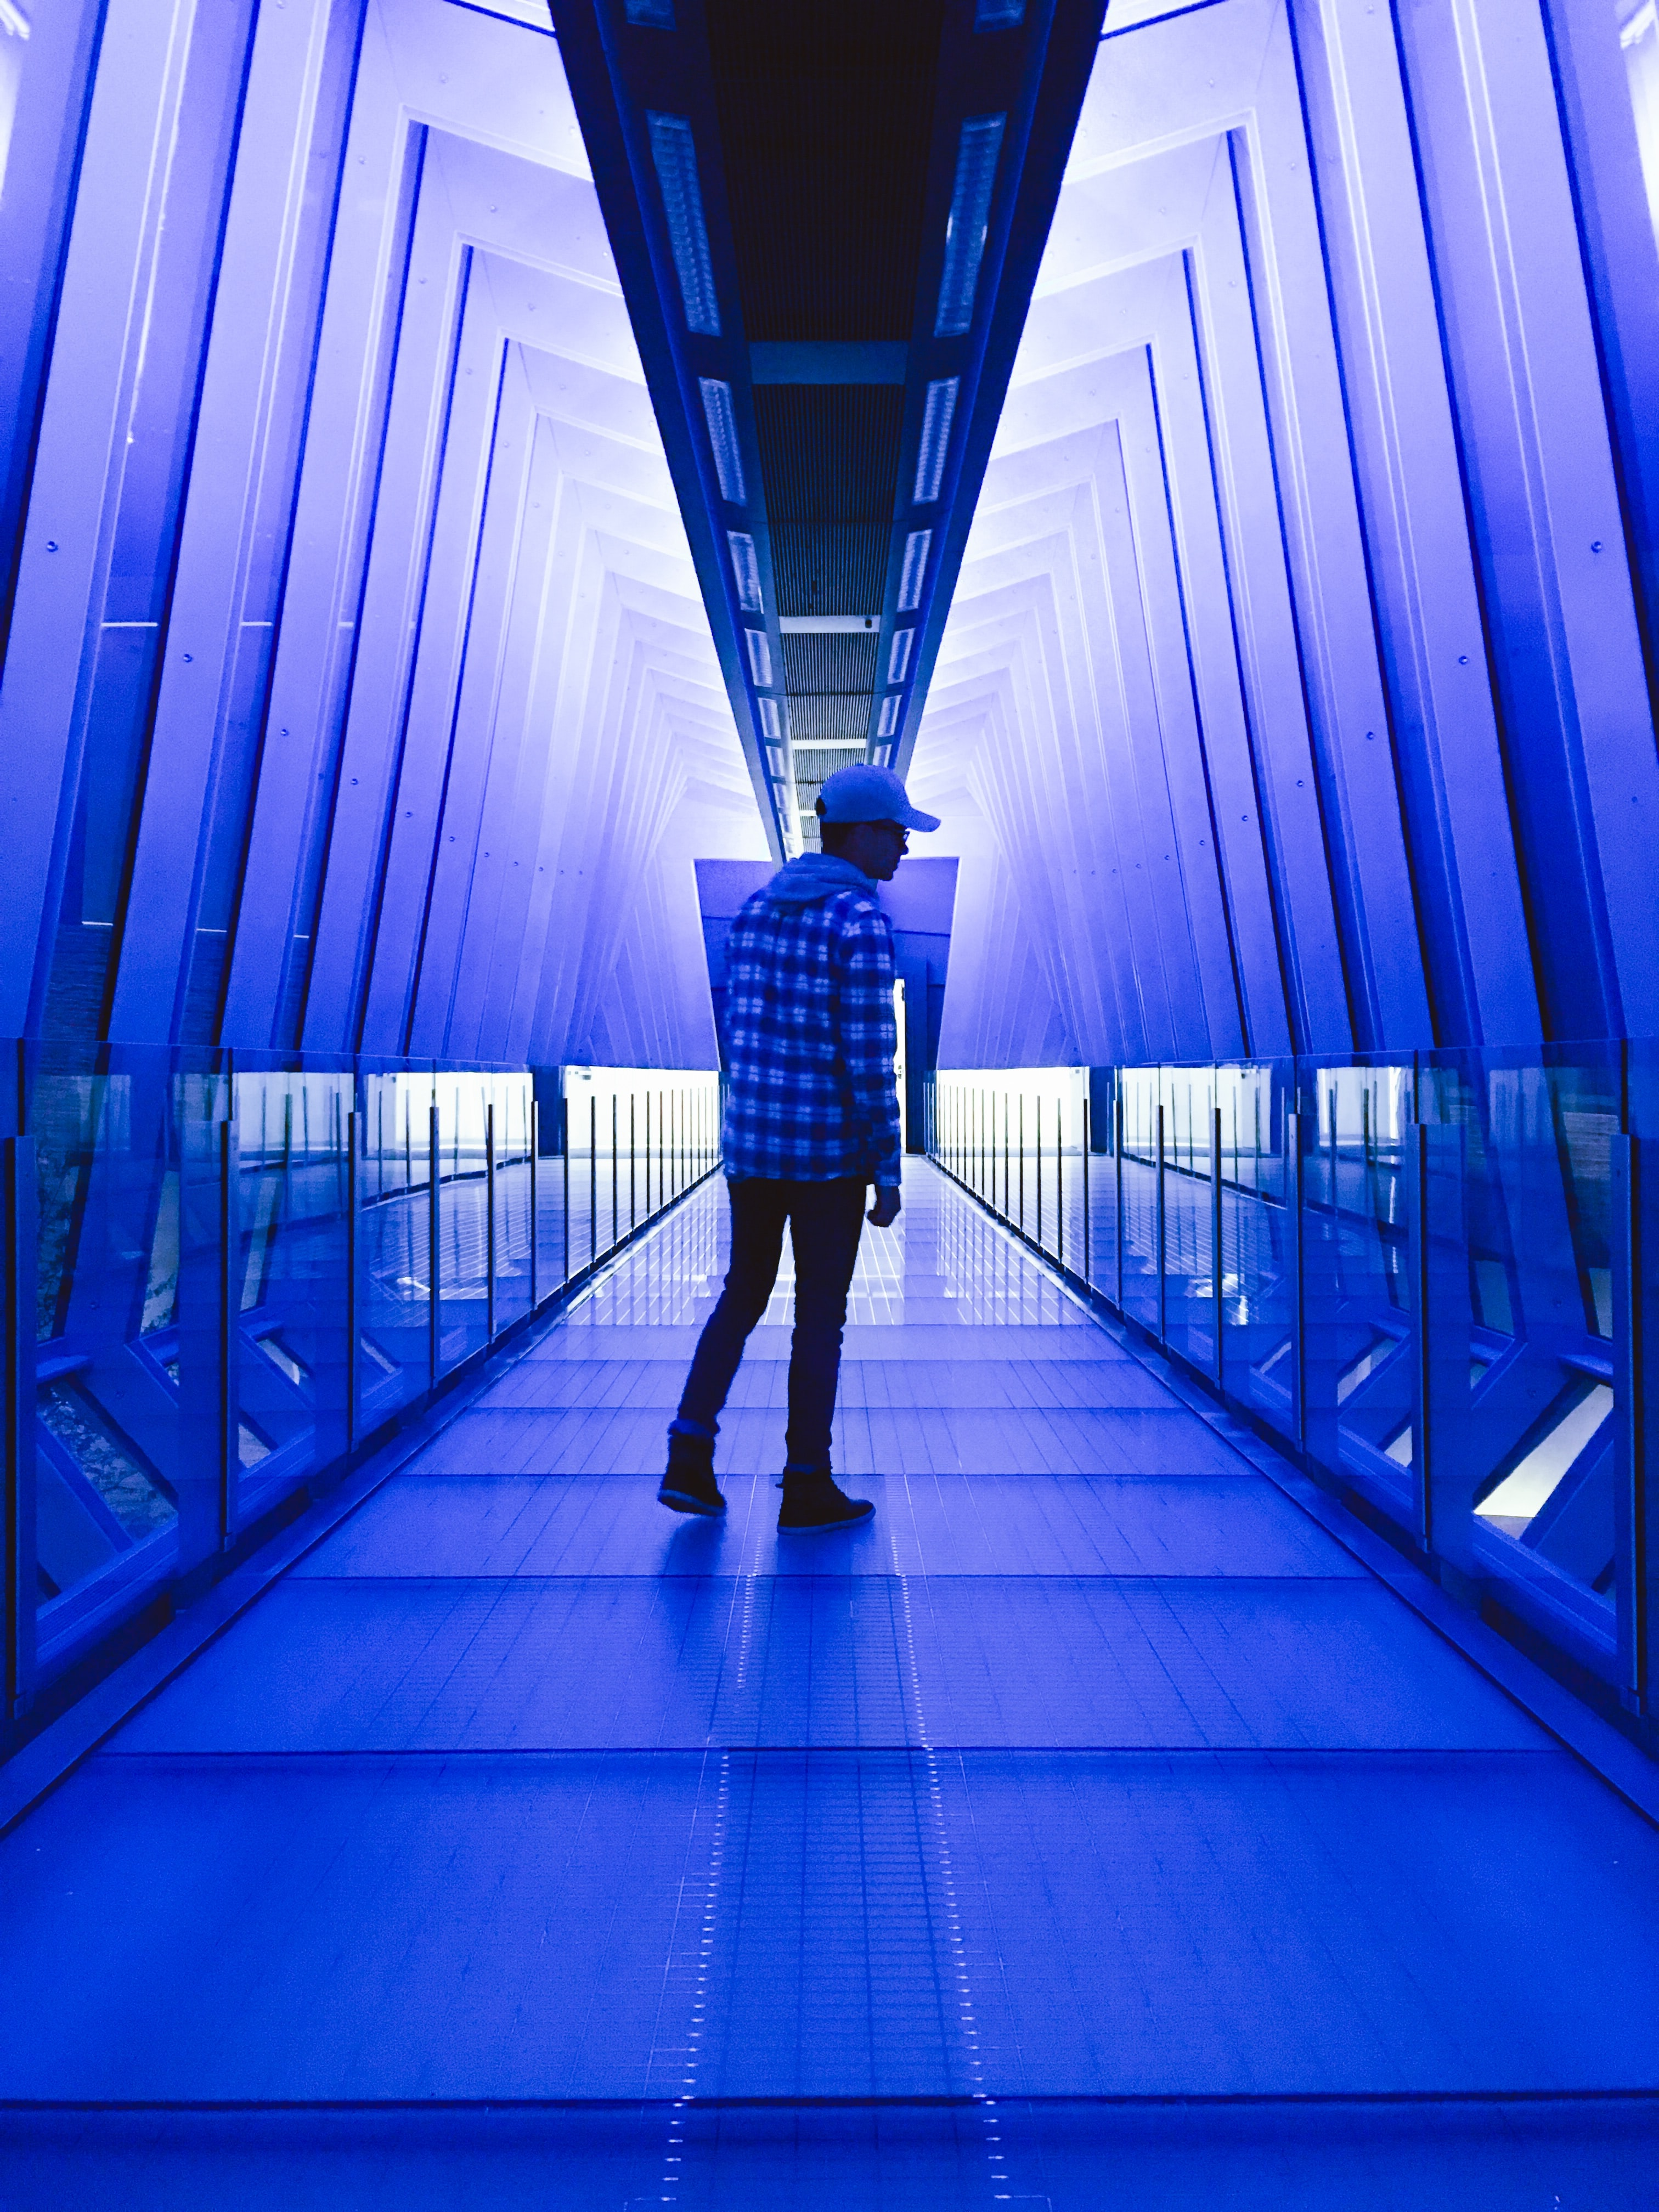 man standing between walls with blue lights